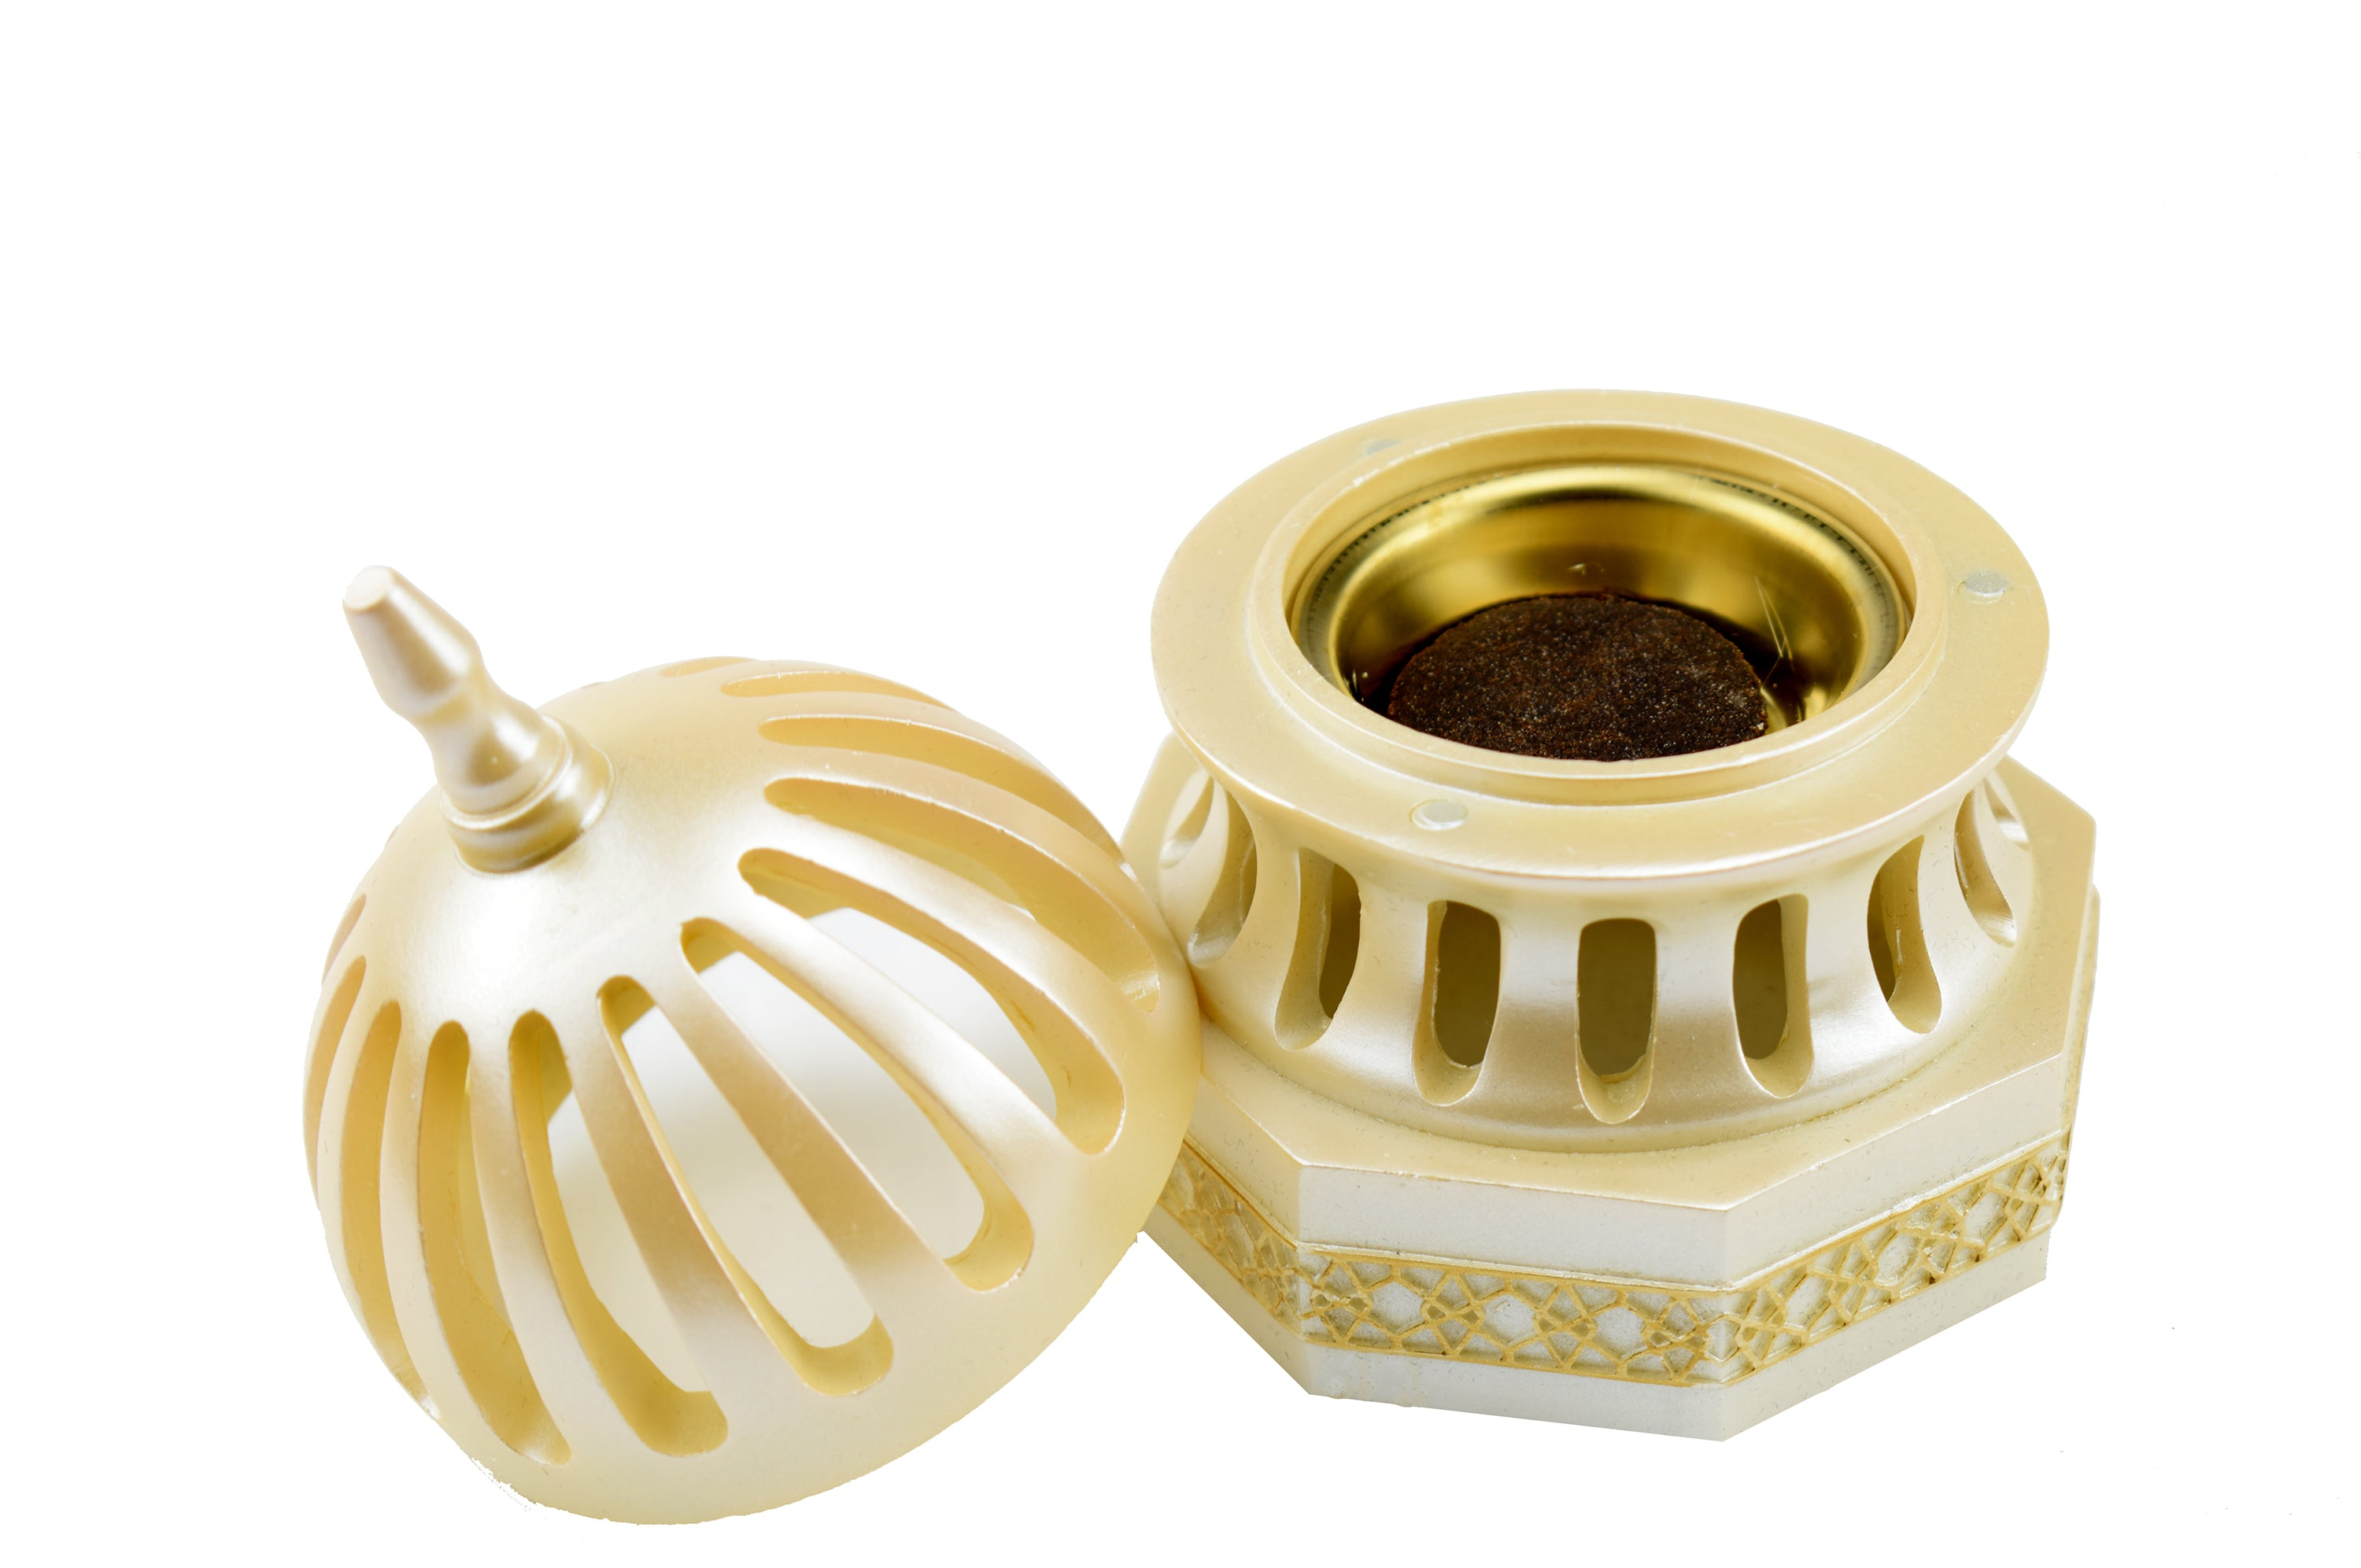 Classic Traditional Dome Style Closed Incense Bakhoor Burner - Beige - Intense oud